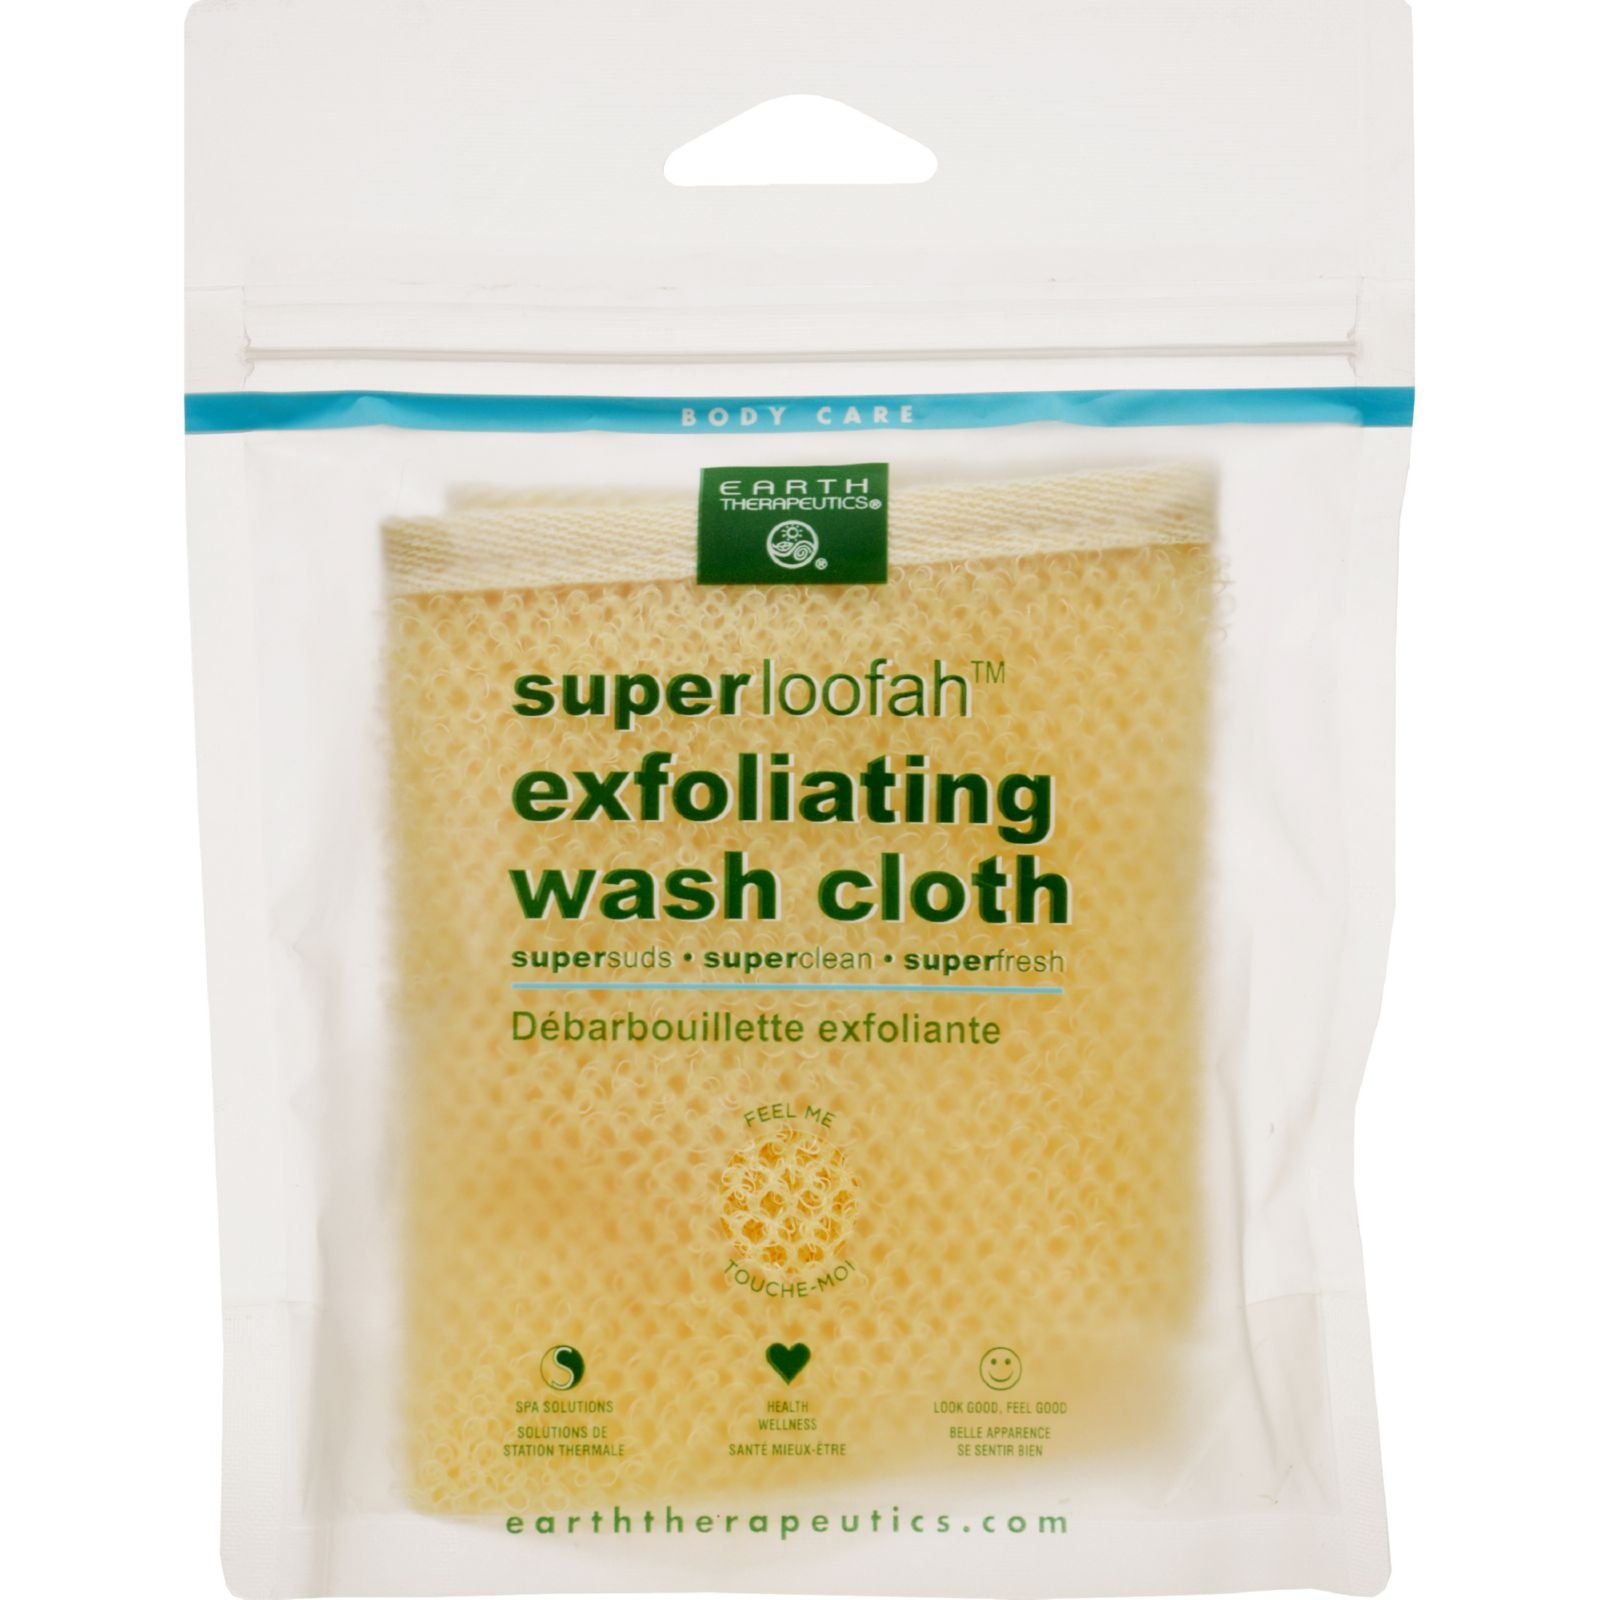 Earth Therapeutics Loofah - Super - Exfoliating - Wash Cloth - 1 Count (Pack of 4) by Earth Therapeutics